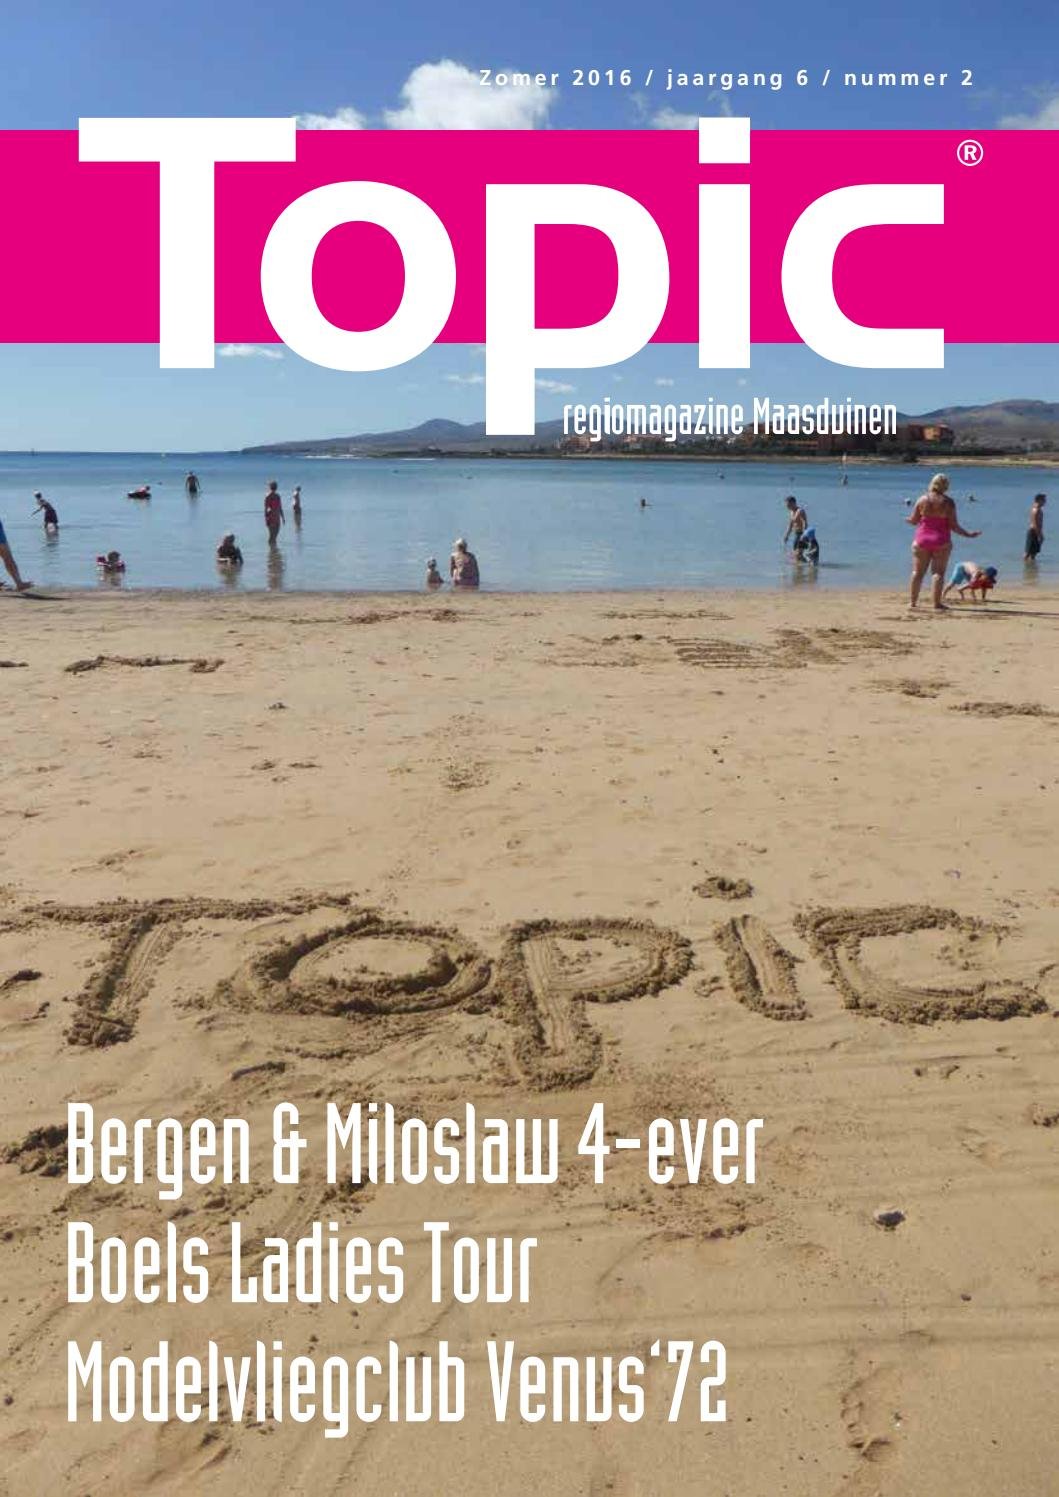 Gartenteich Ideen Topic Maasduinen Zomer 2016 By Rvb Media Issuu